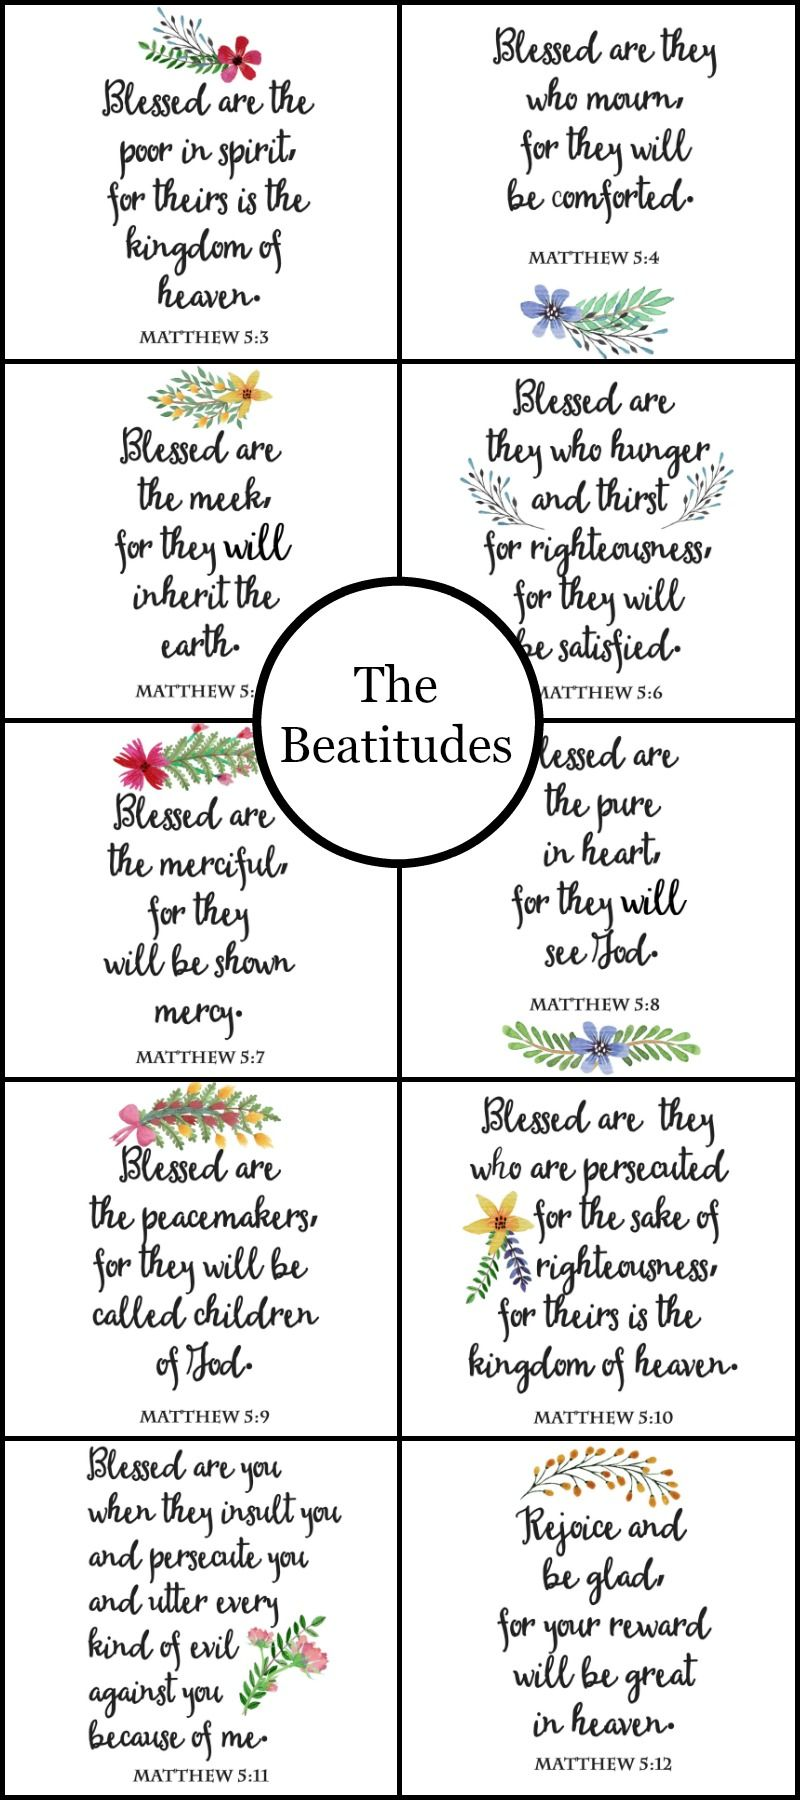 Modest image with regard to printable beatitudes